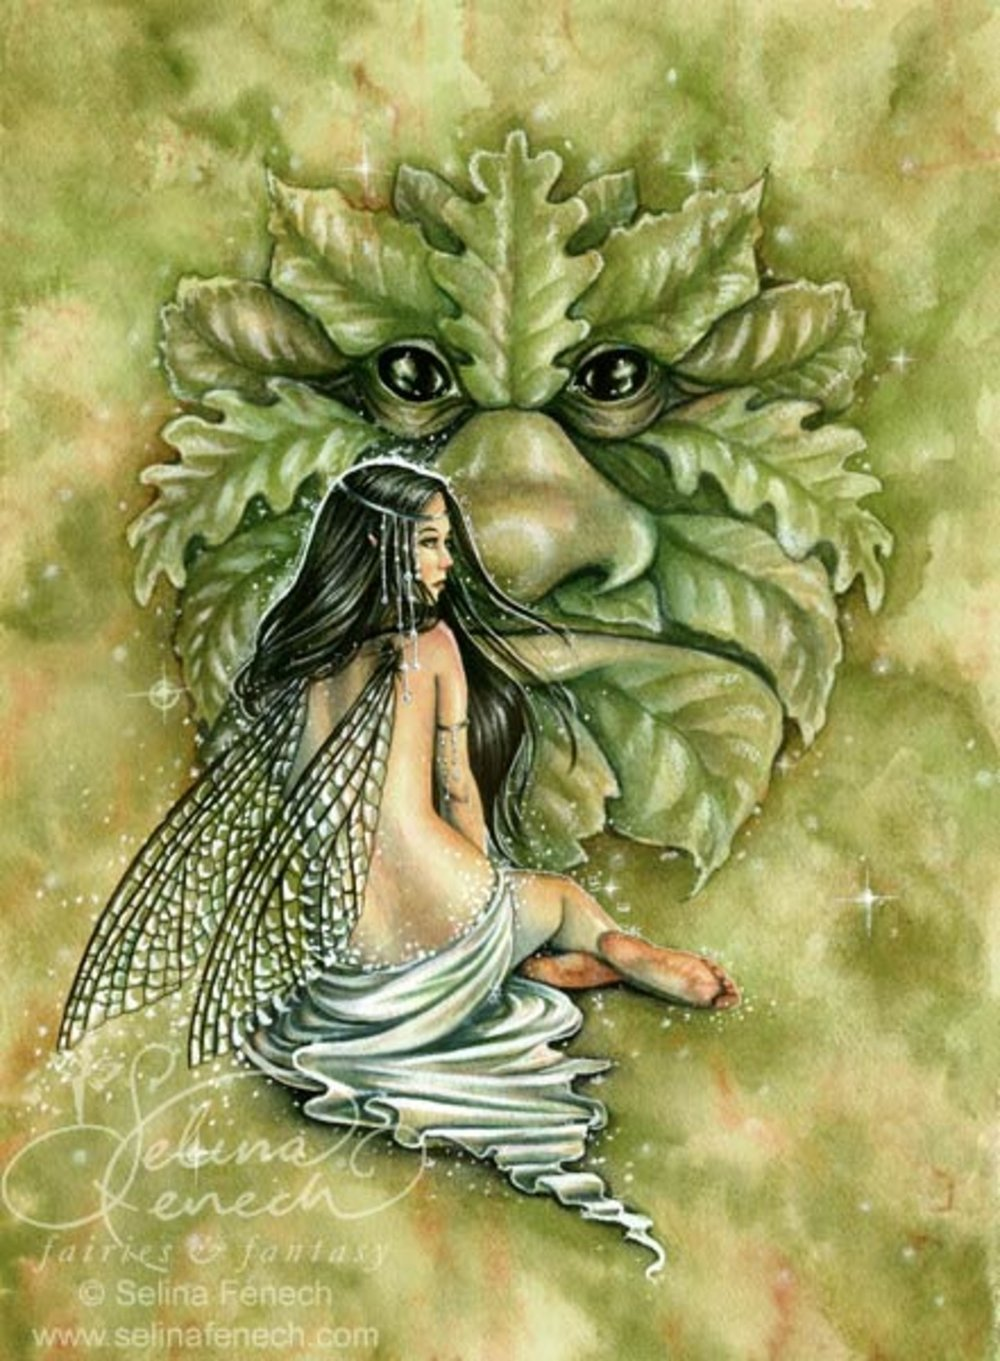 Greenman's Bride